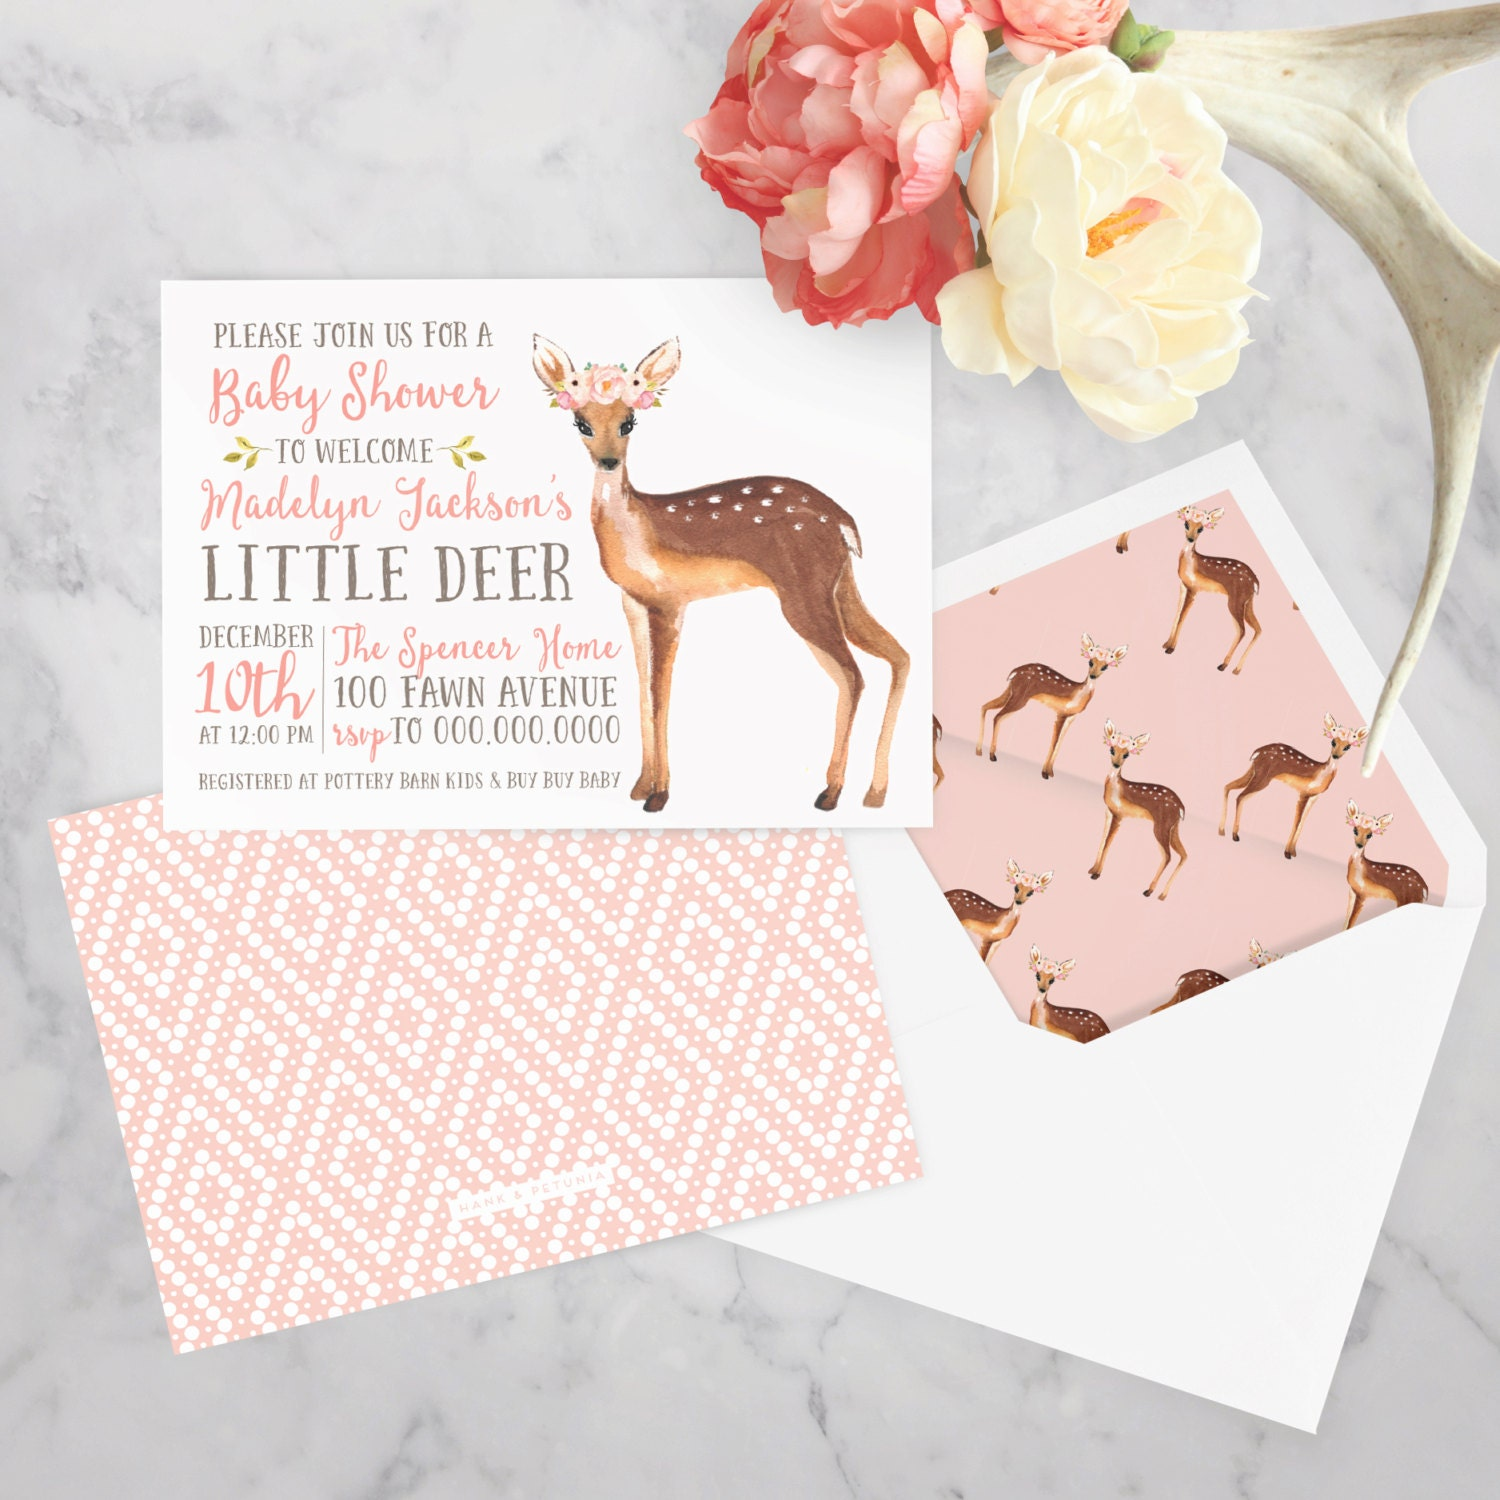 Little Deer Watercolor Baby Shower Invitation, Fawn Baby Baby ...